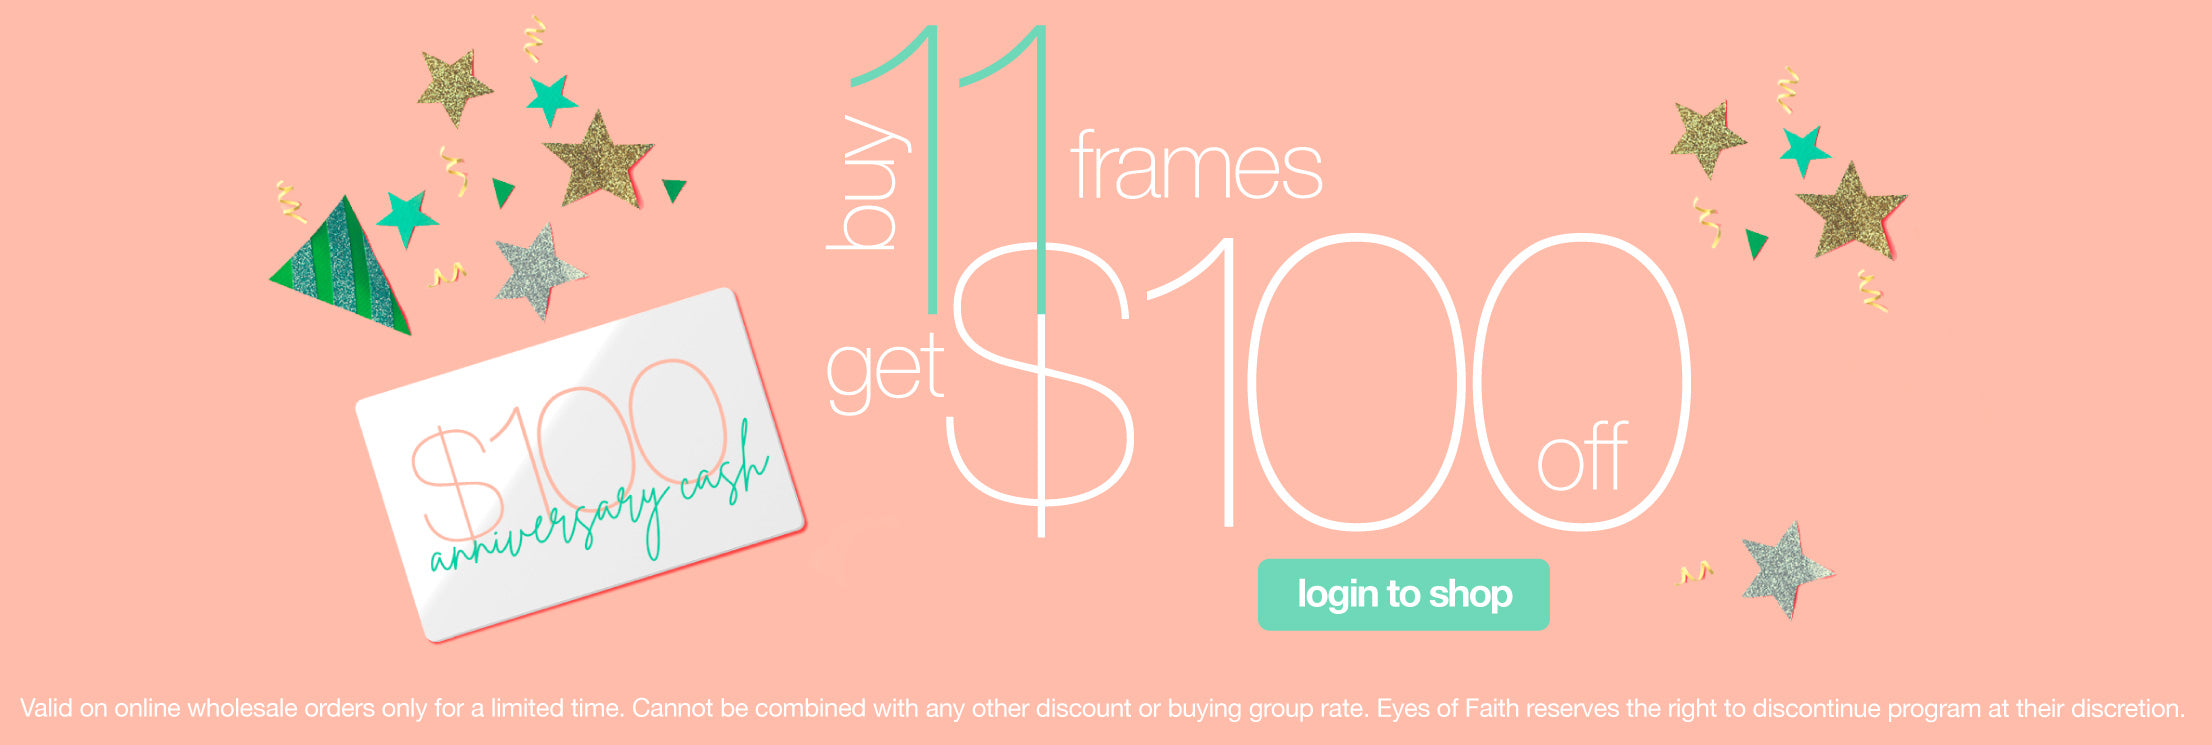 Buy 11 frames, get $100 Anniversary Cash instantly